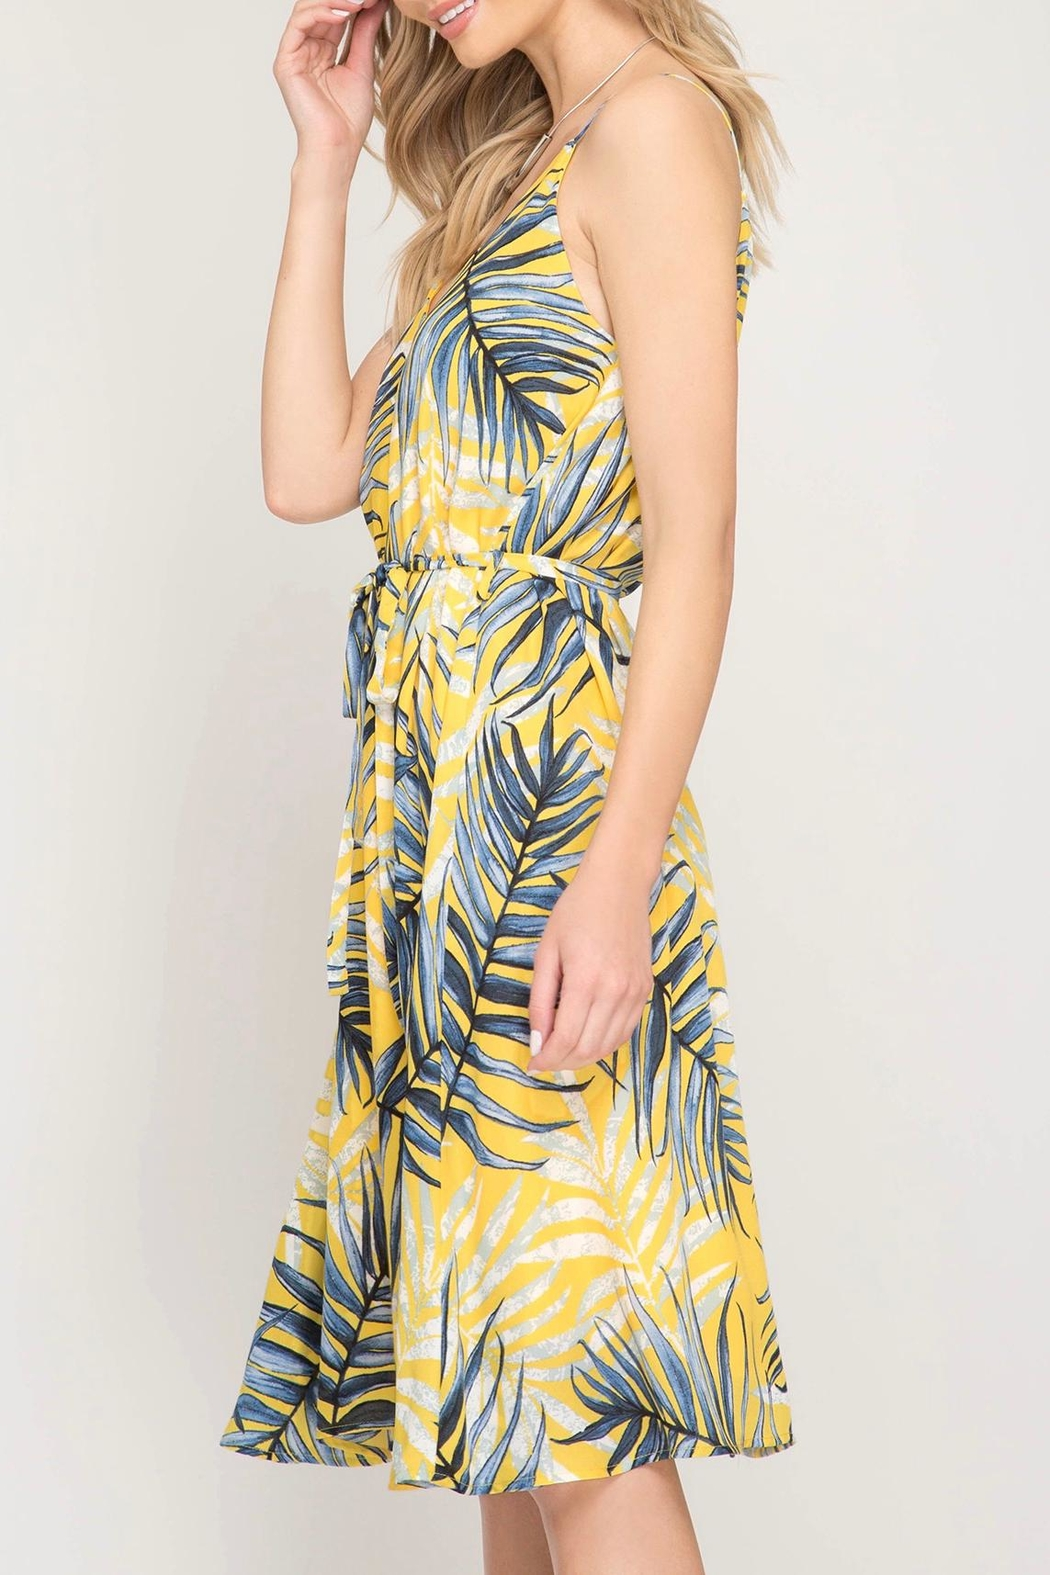 LuLu's Boutique Printed Dress - Side Cropped Image